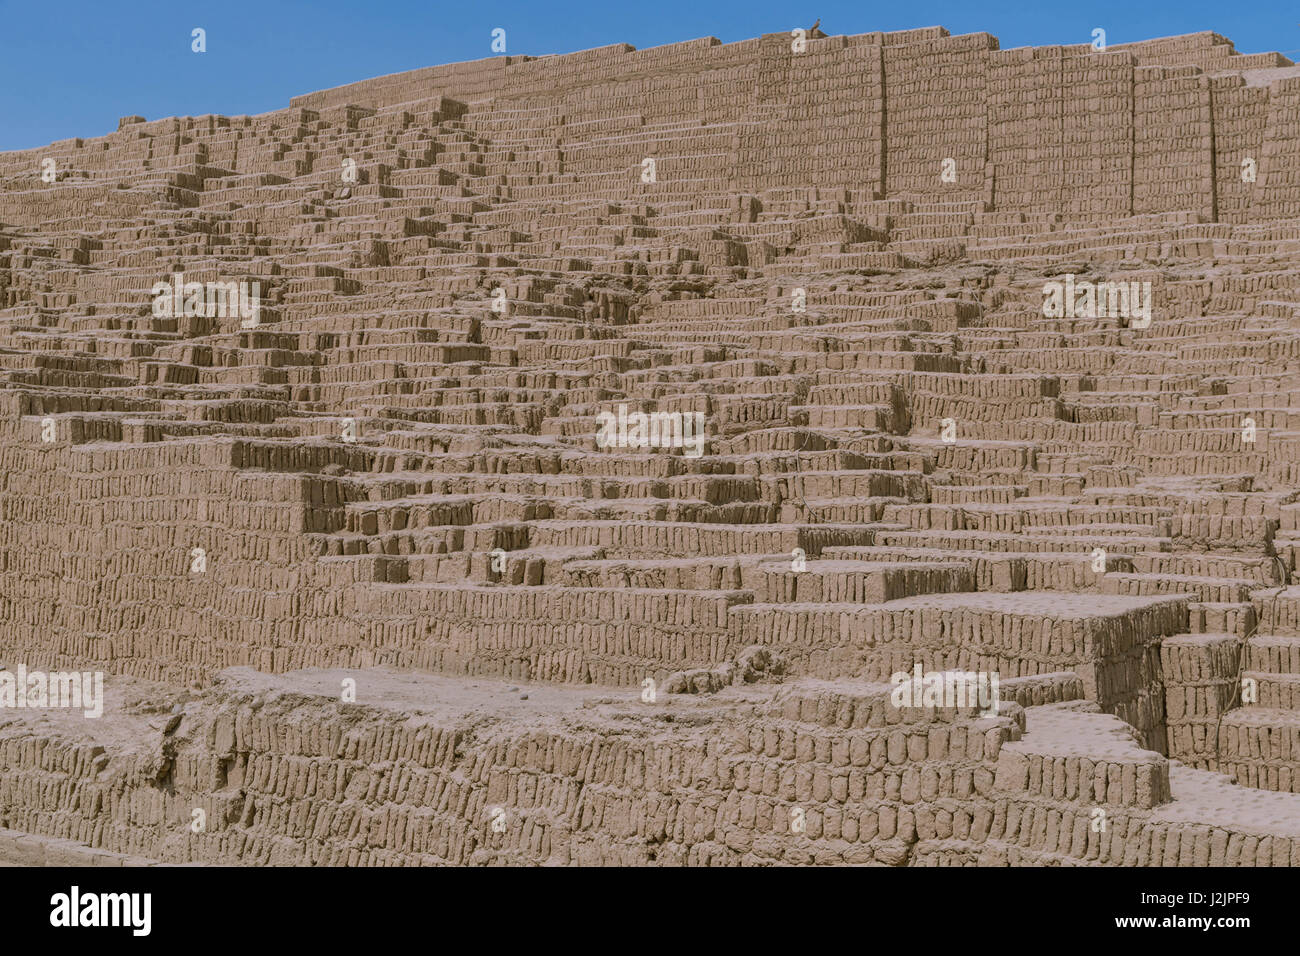 the adobe and clay pyramid of huaca pucllana in the miraflores